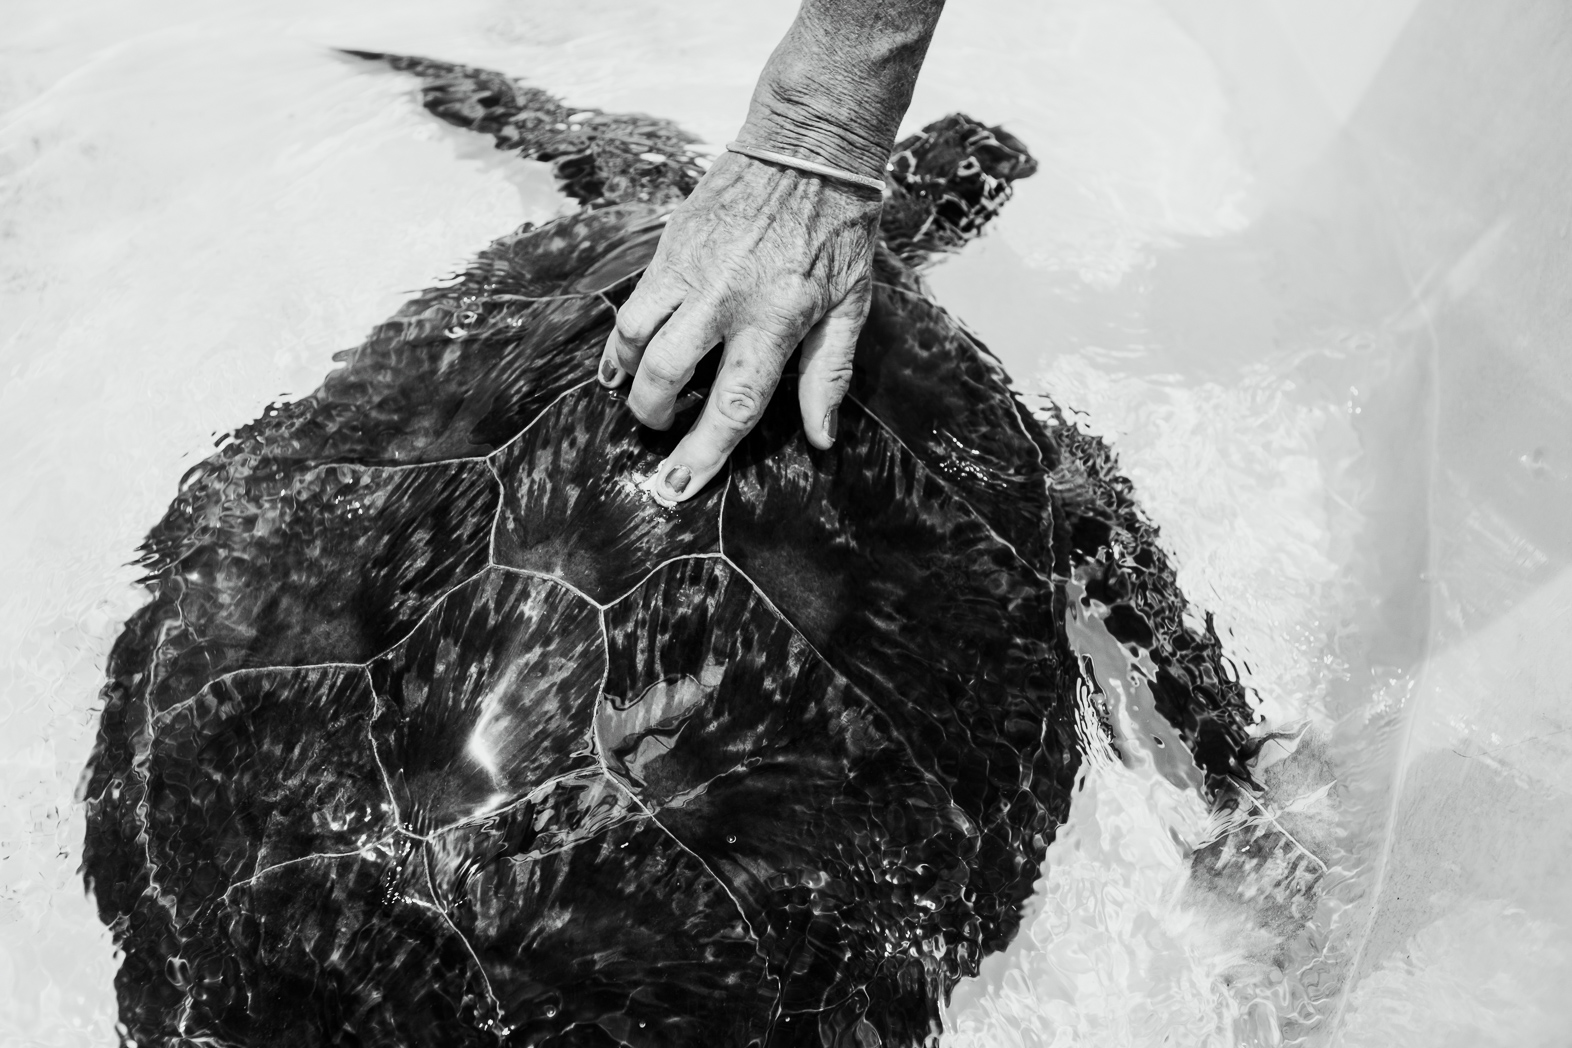 Jennie places antibiotic ointment in a wound from being speared. This turtle had four spear holes in its shell, but due to treatment was able to be healed and released.